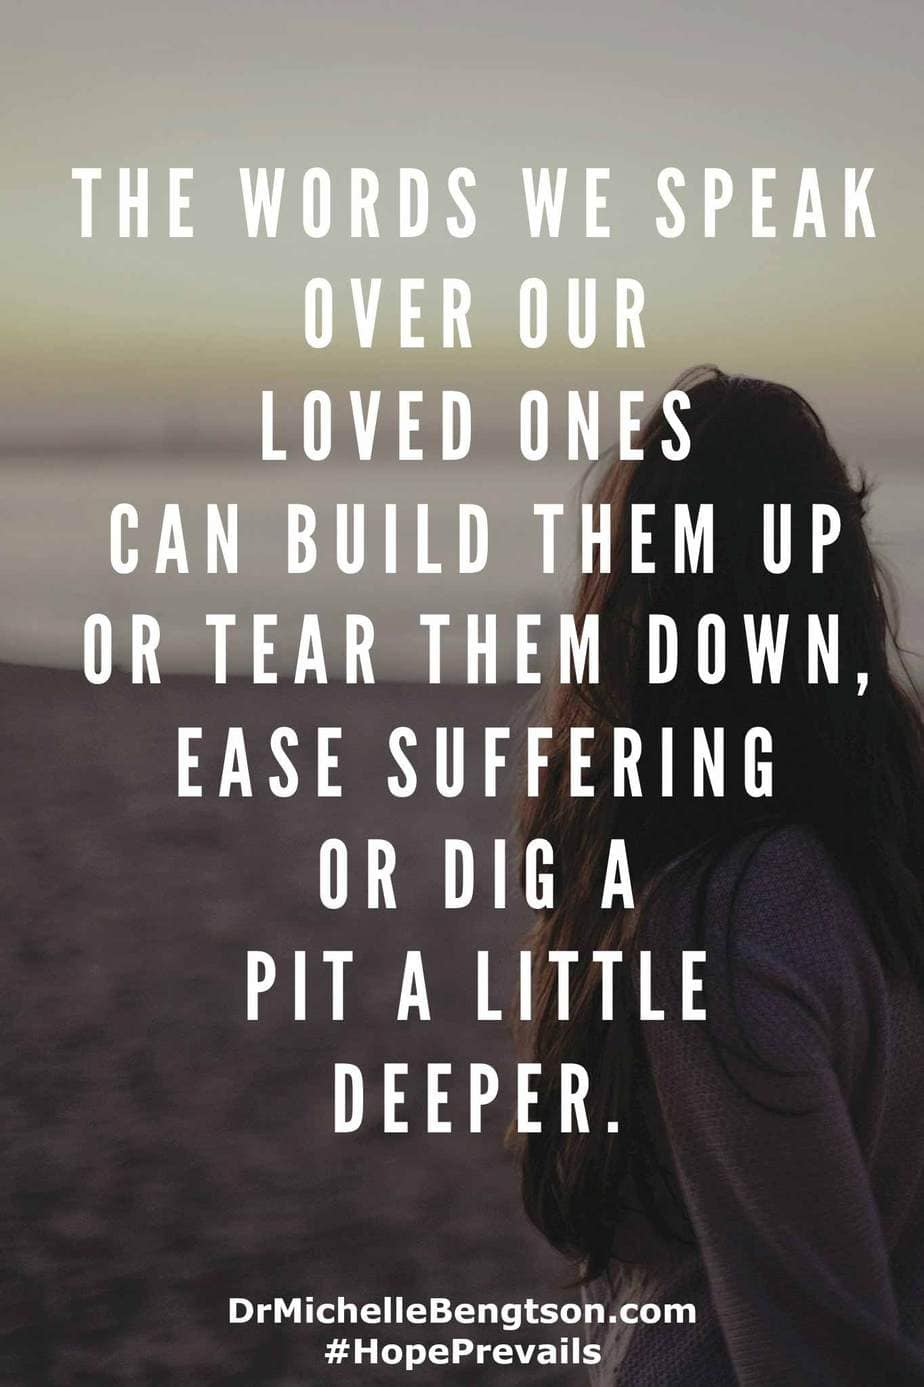 Scripture tells us that the words we speak can produce life or death. The words we speak over our loved ones can build them up or tear them down. They can help other ease their suffering, or they can dig a pit just a little deeper. #ChristianInspiration